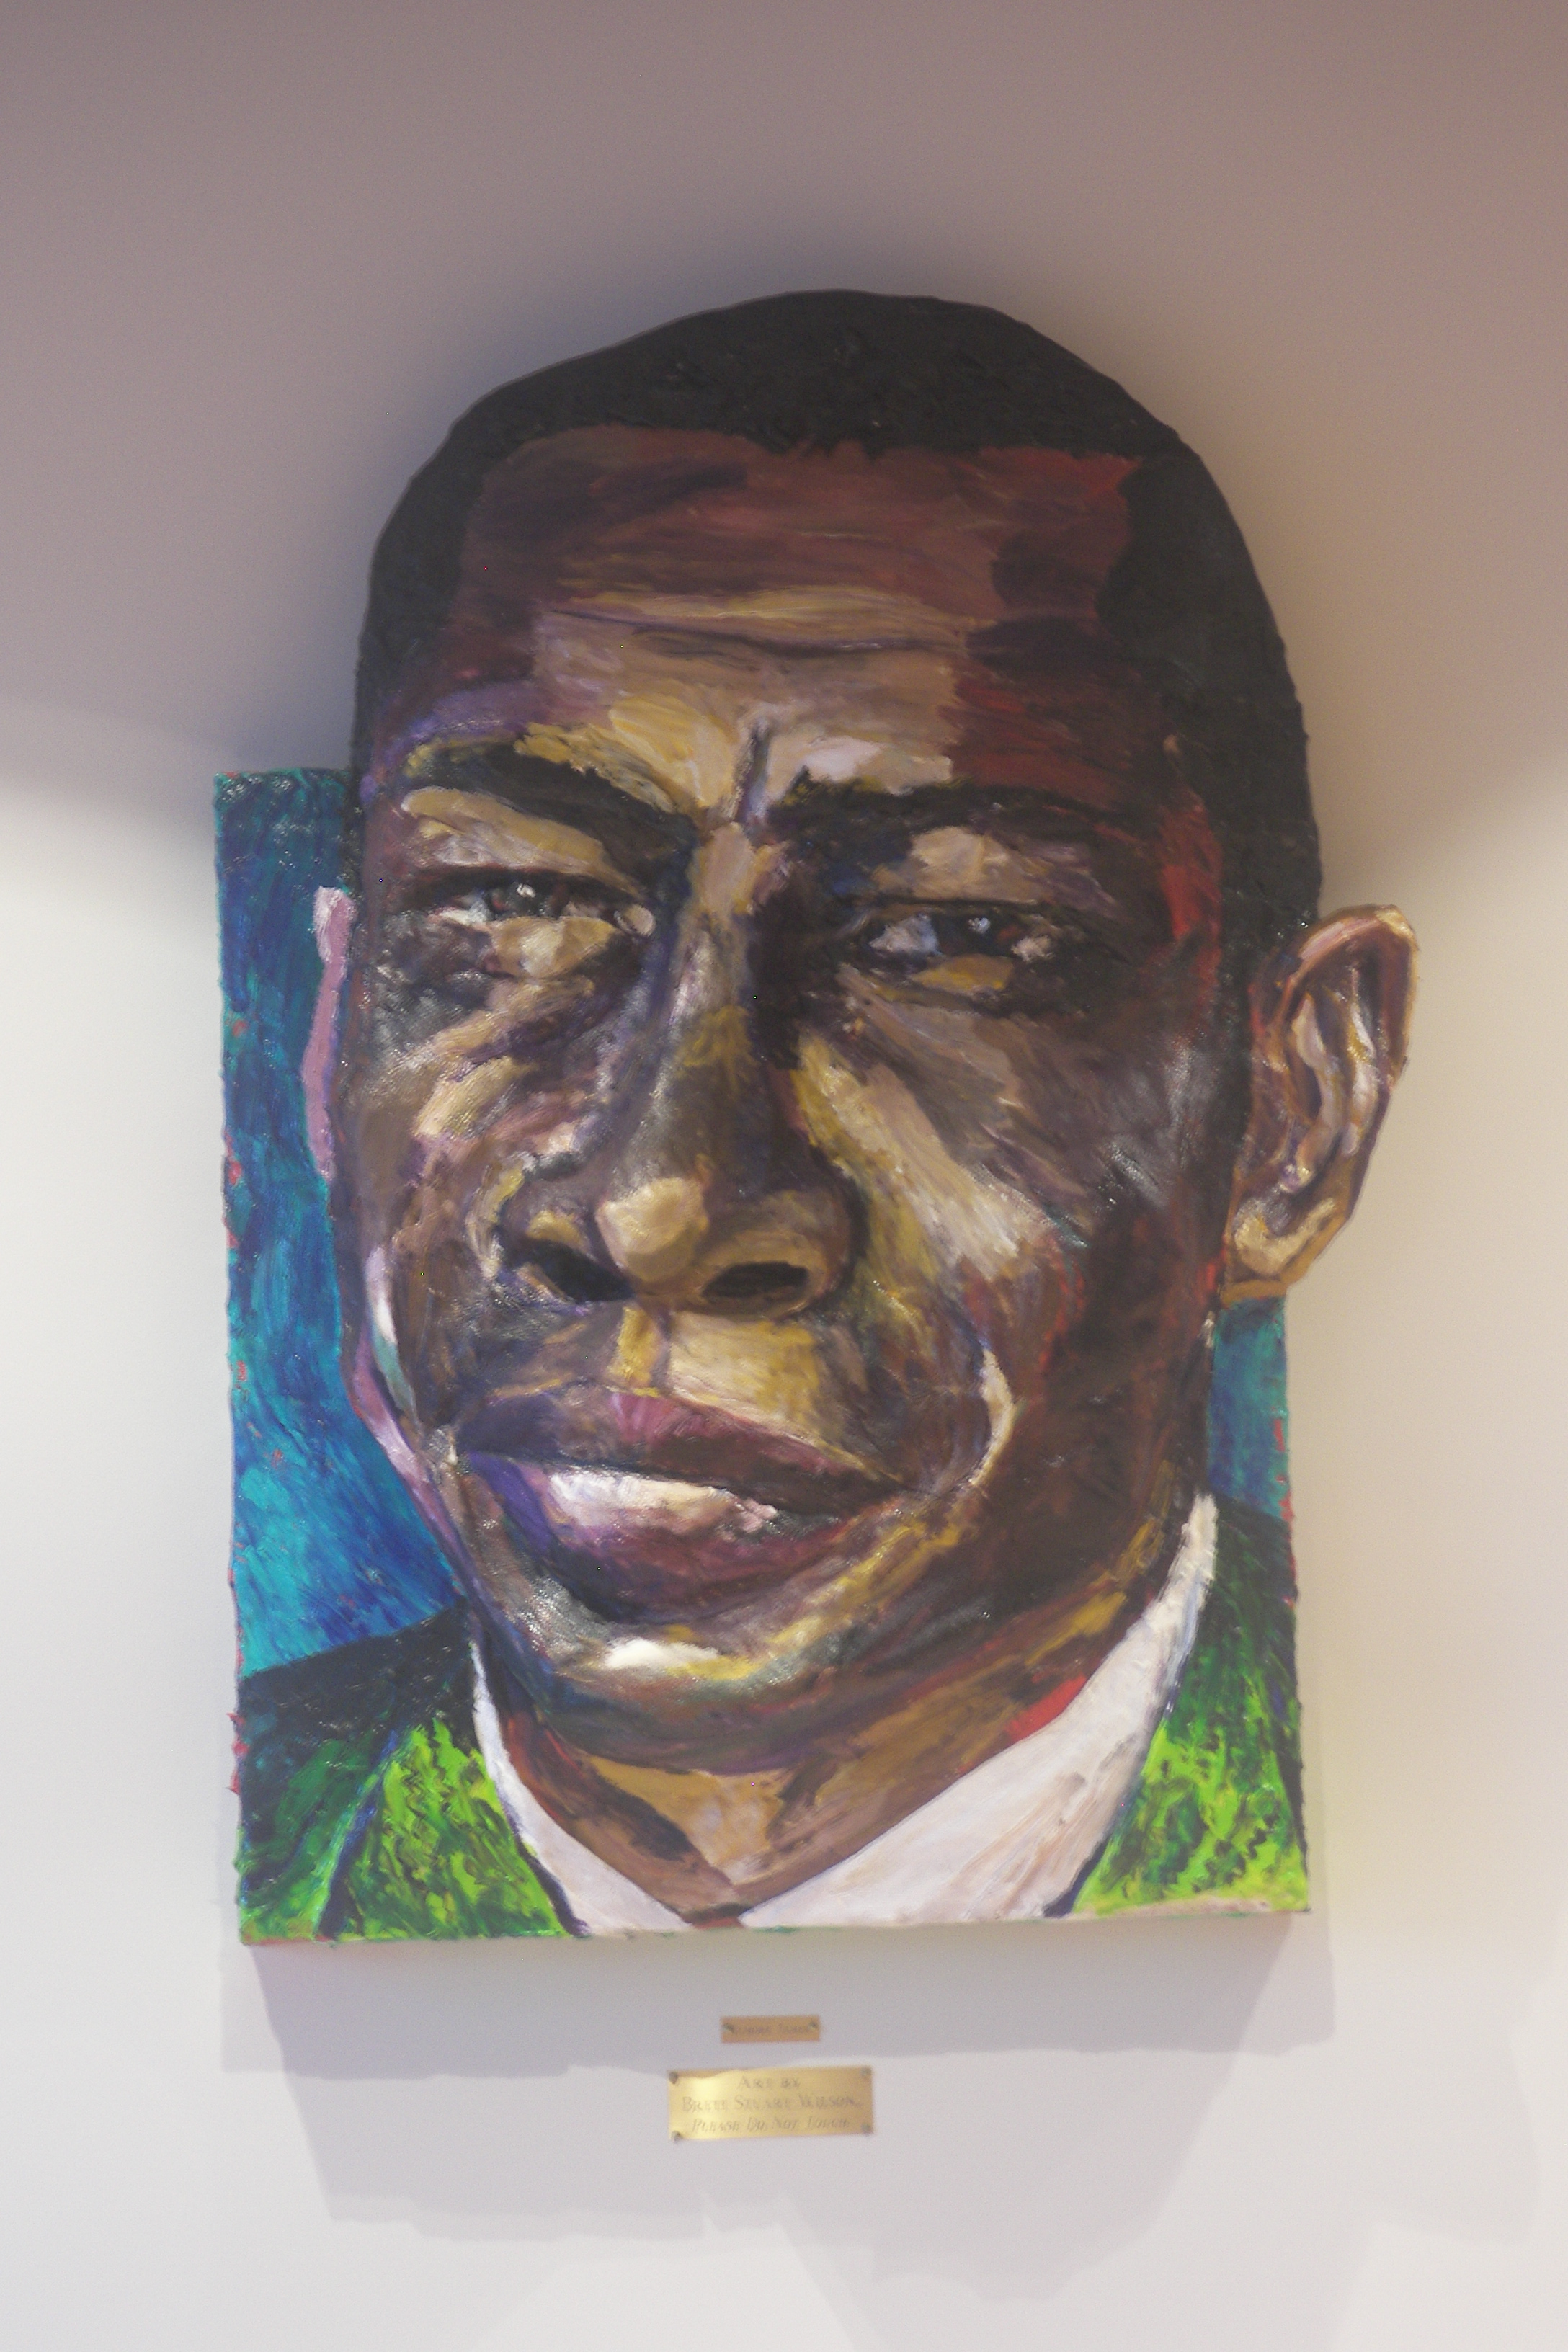 Built-Out Portrait of Elmore James by Artist Brett Stuart Wilson